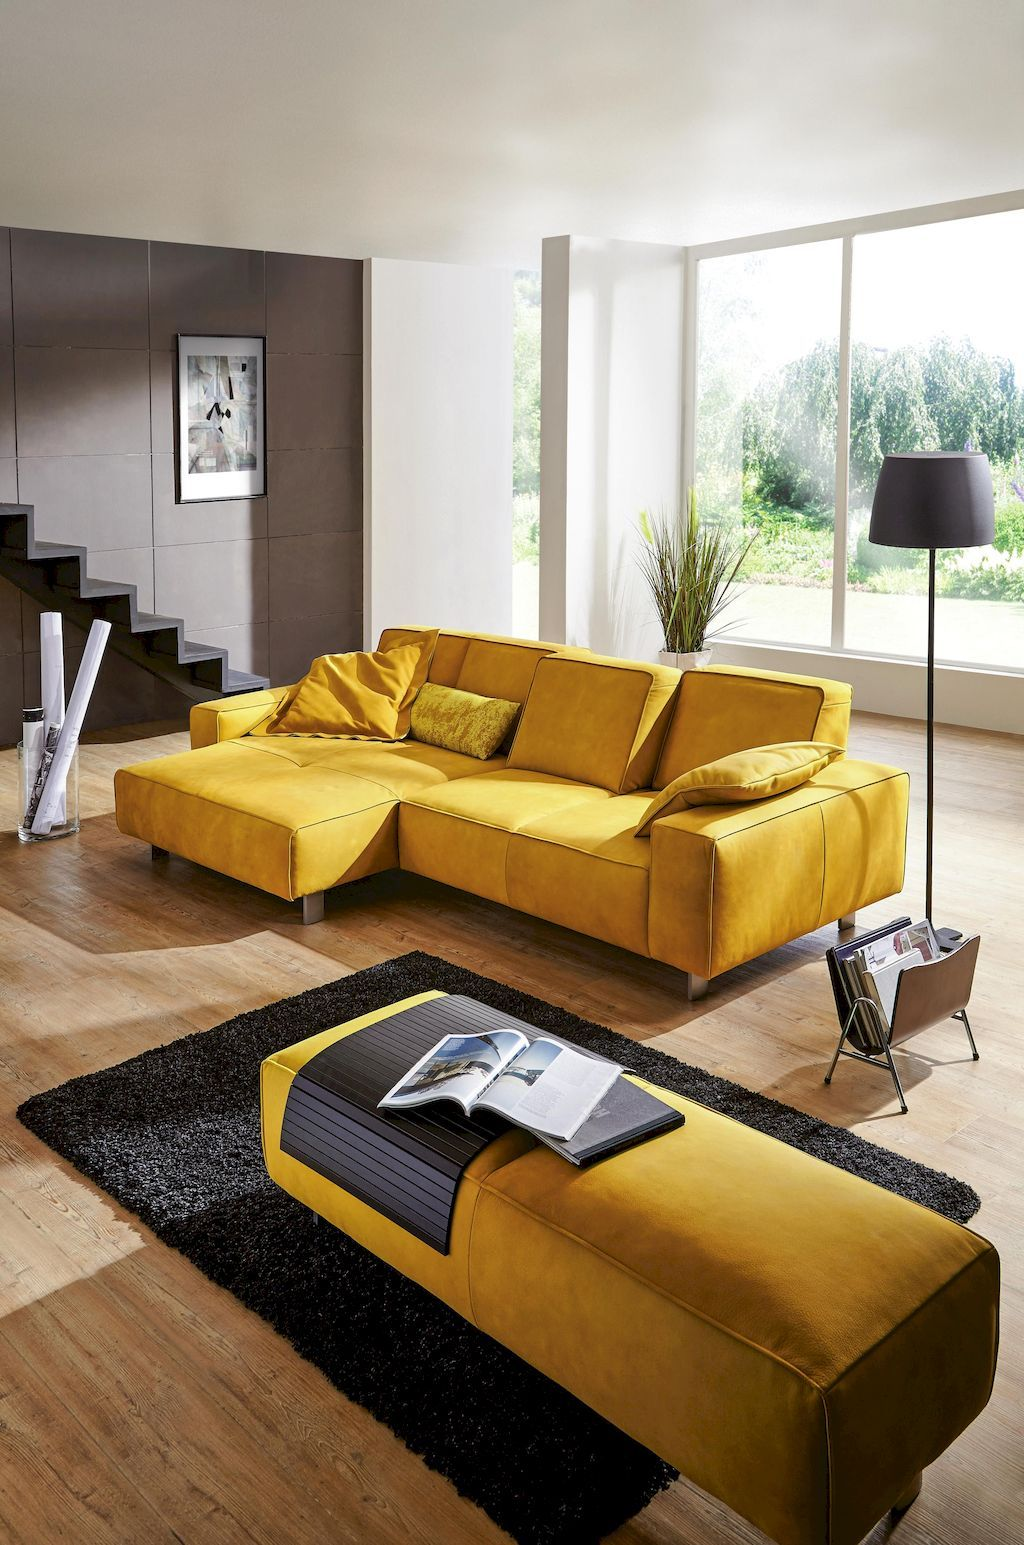 Best 75 Beautiful Yellow Sofa For Living Room Decor Ideas 640 x 480